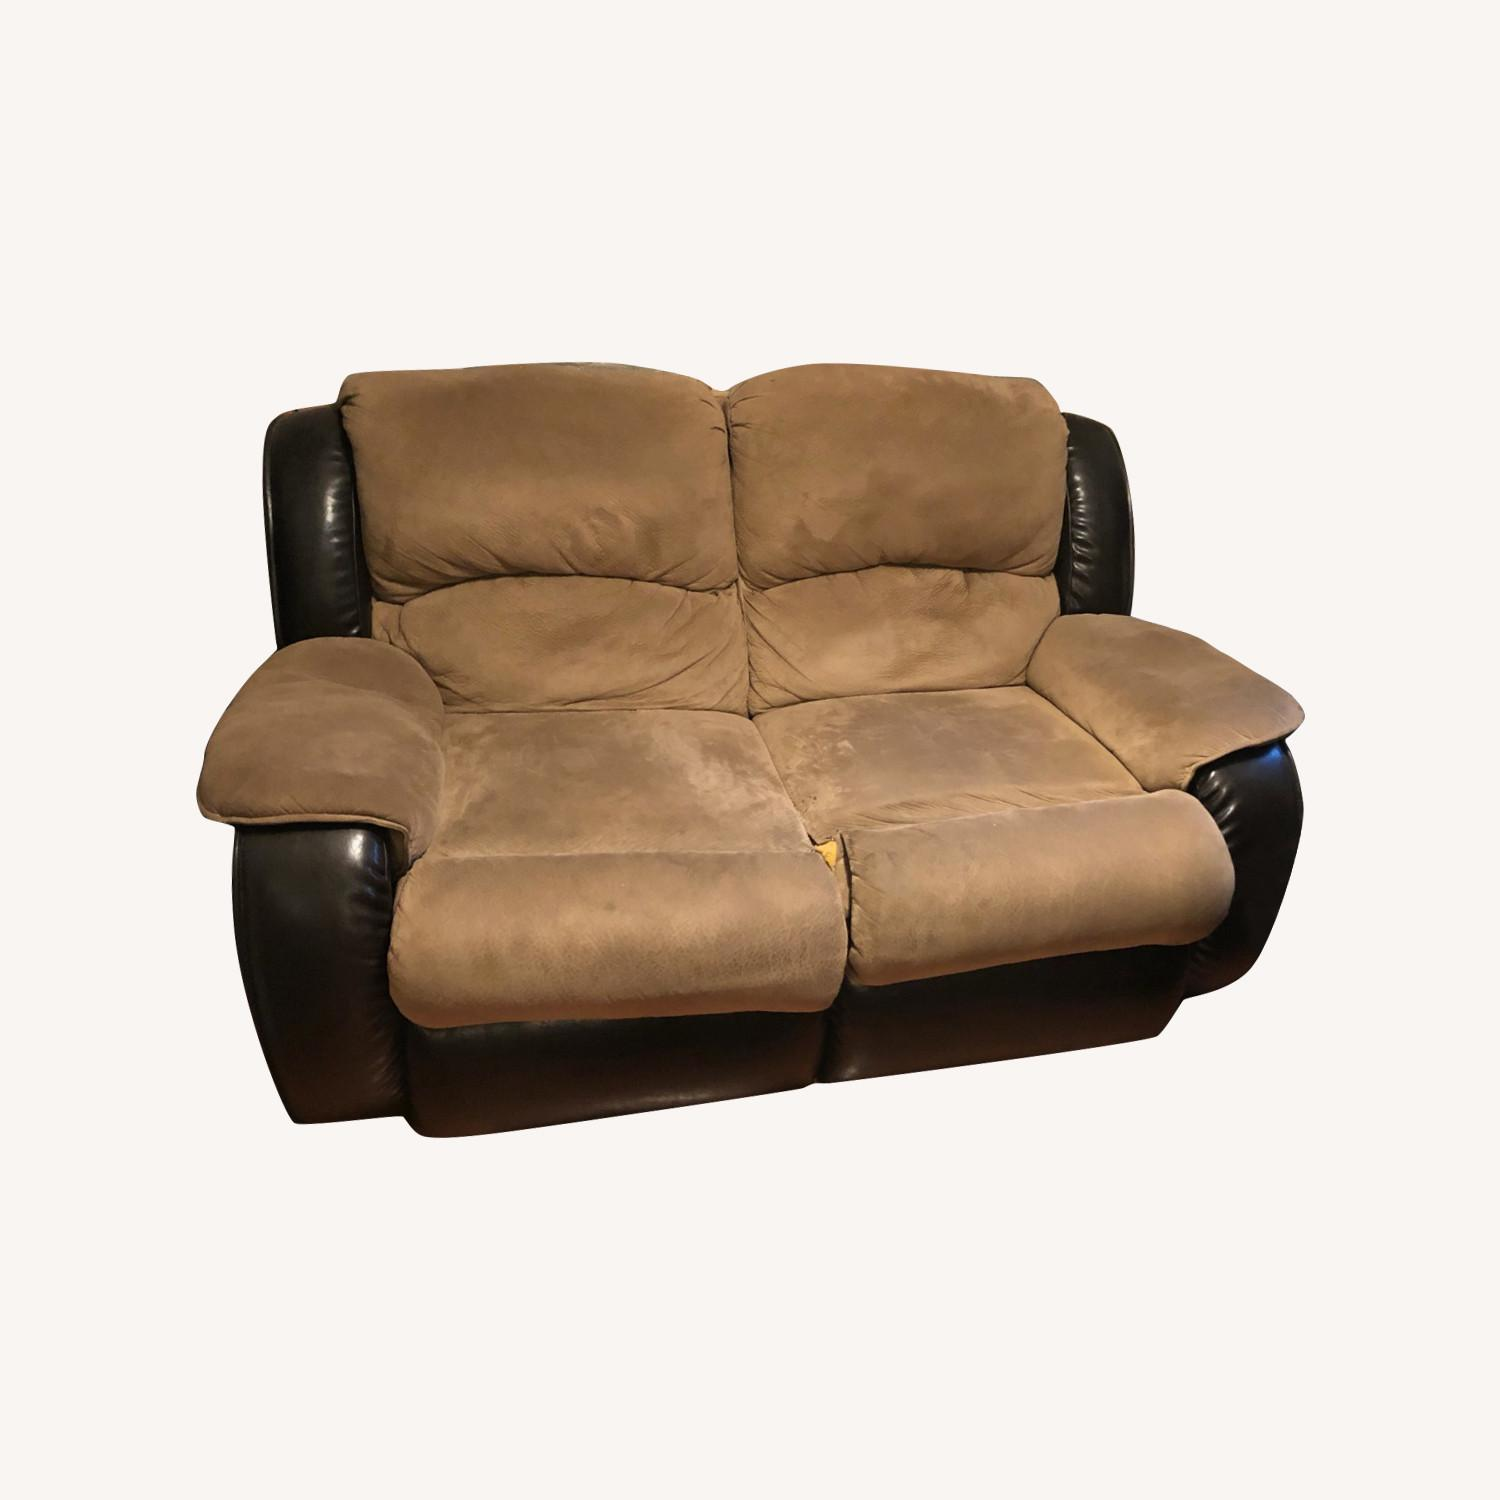 Reclining Couch - image-0